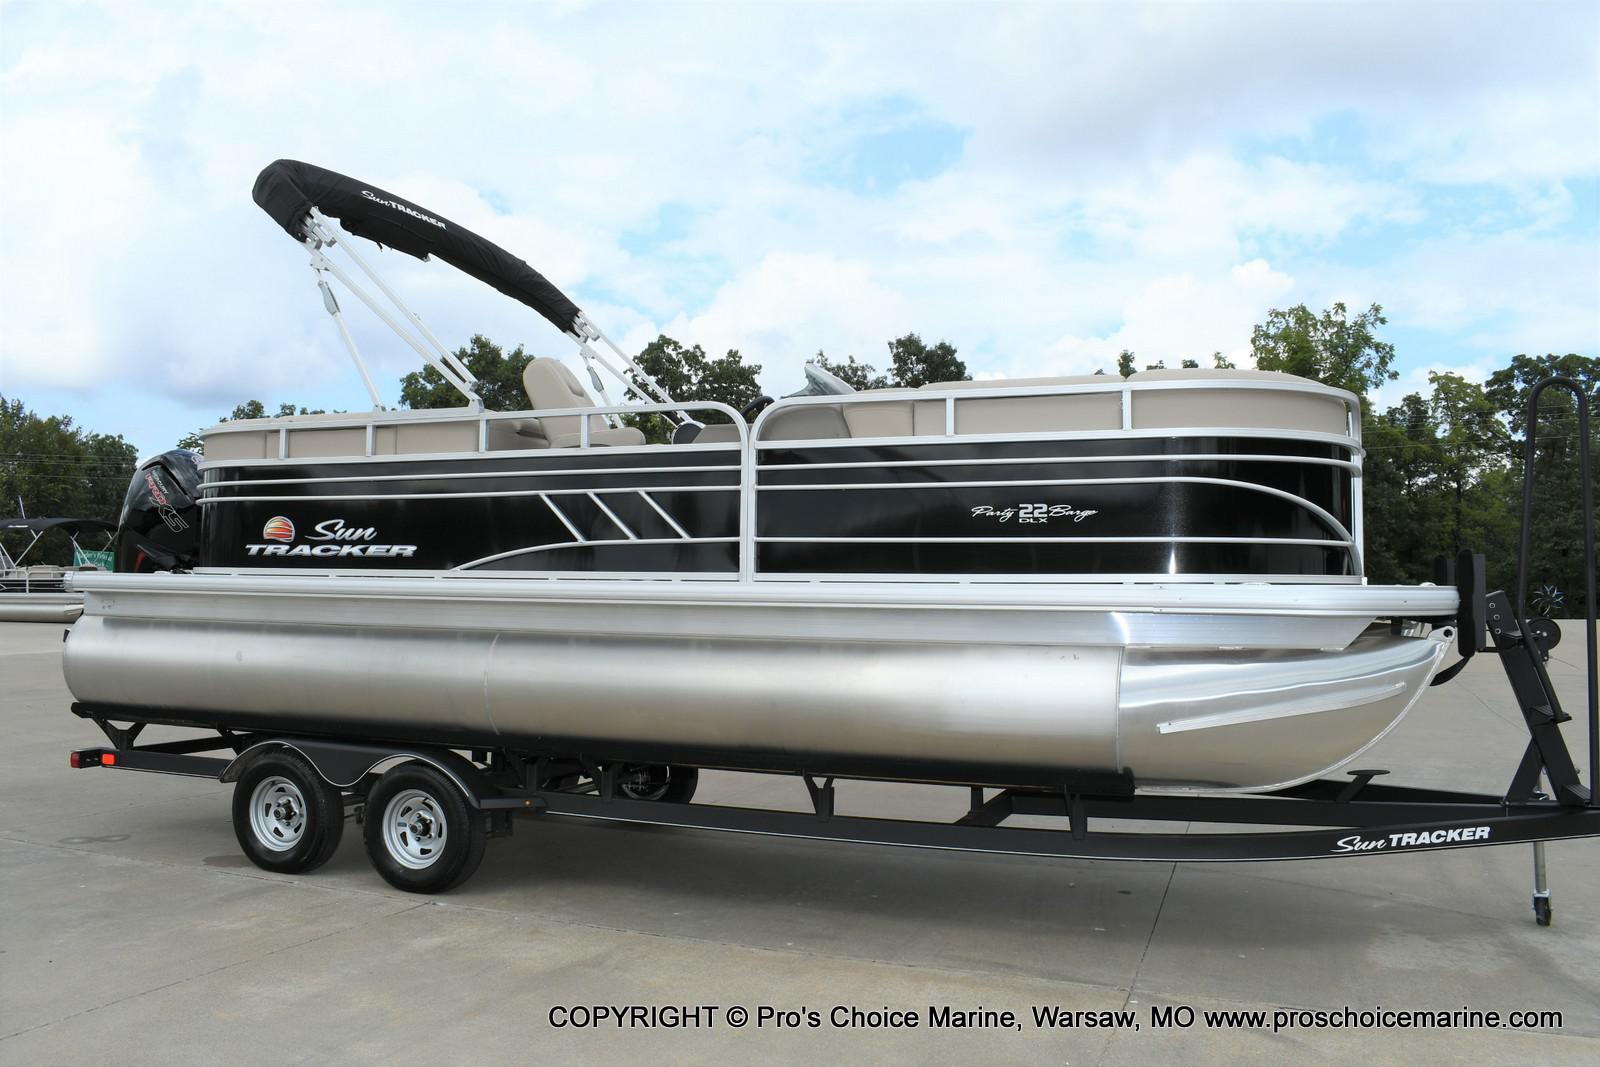 2020 Sun Tracker boat for sale, model of the boat is Party Barge 22 DLX & Image # 31 of 50